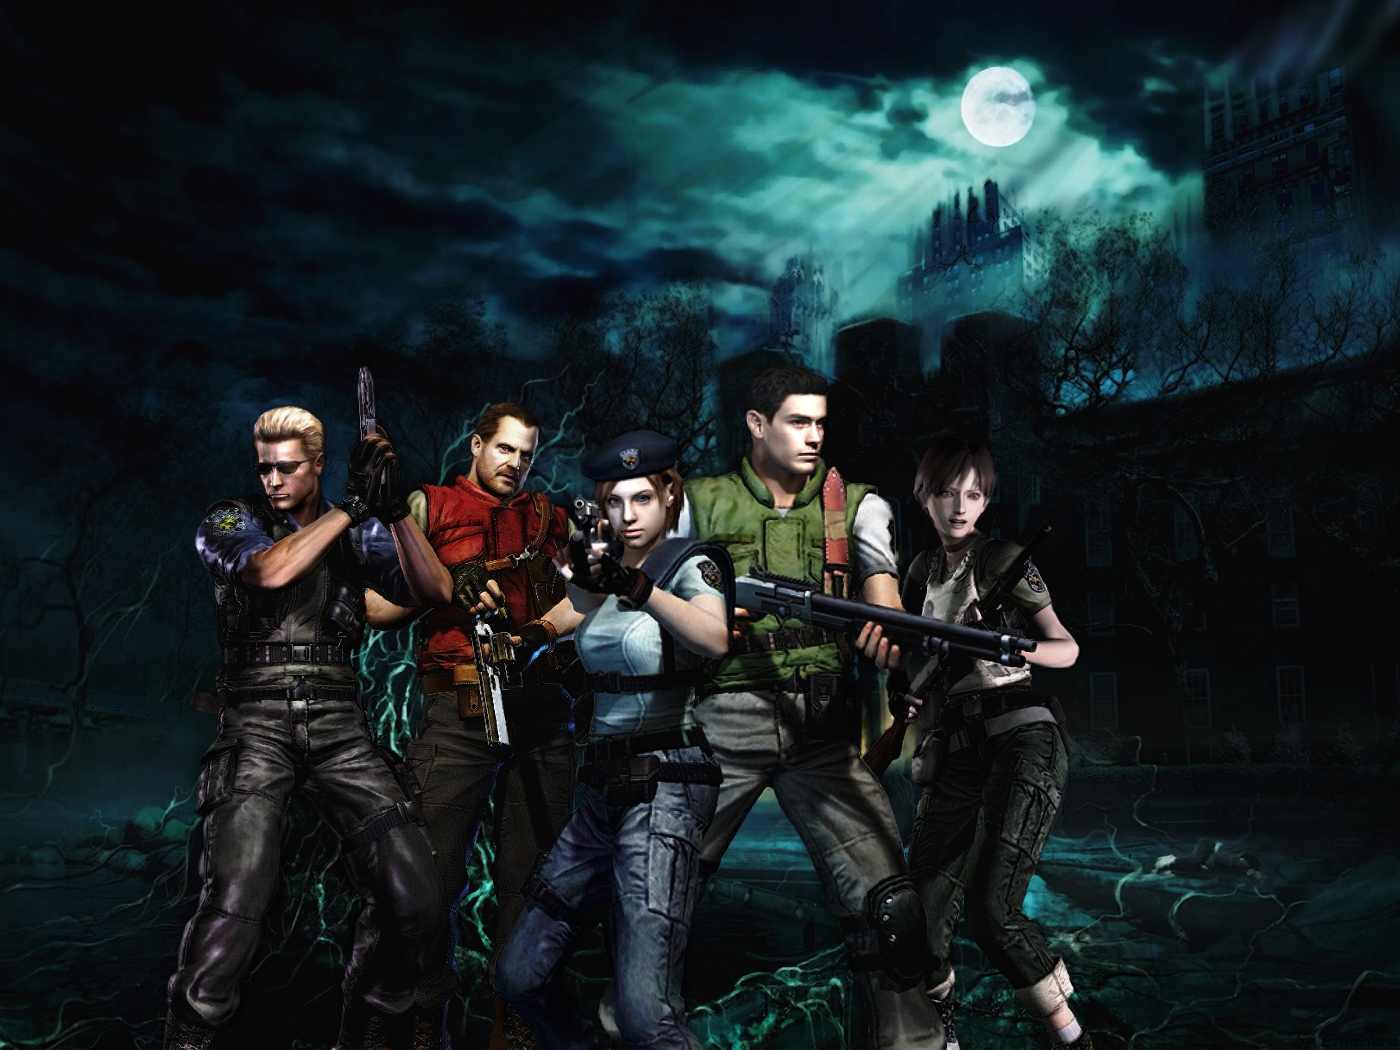 Resident Evil Wallpapers High Quality | Download Free